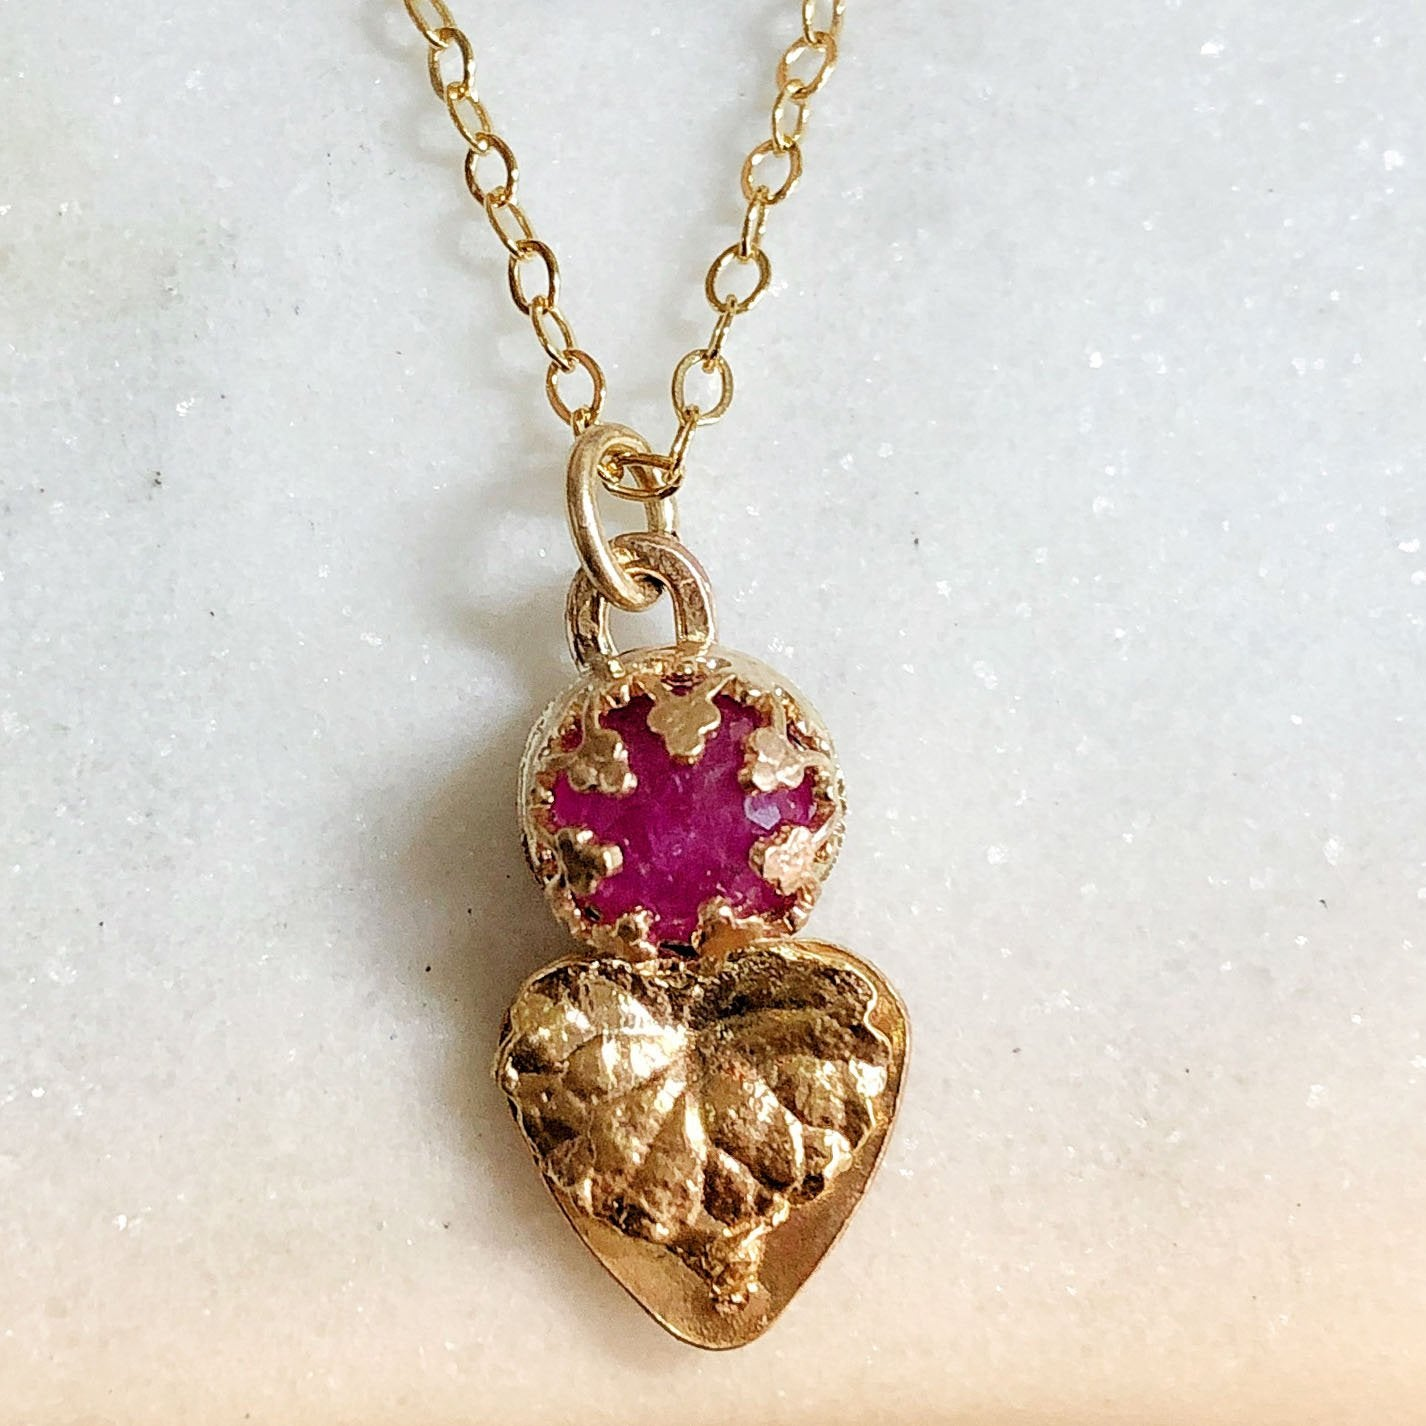 Ruby Rose Bud and Golden Leaf Pendant Necklace